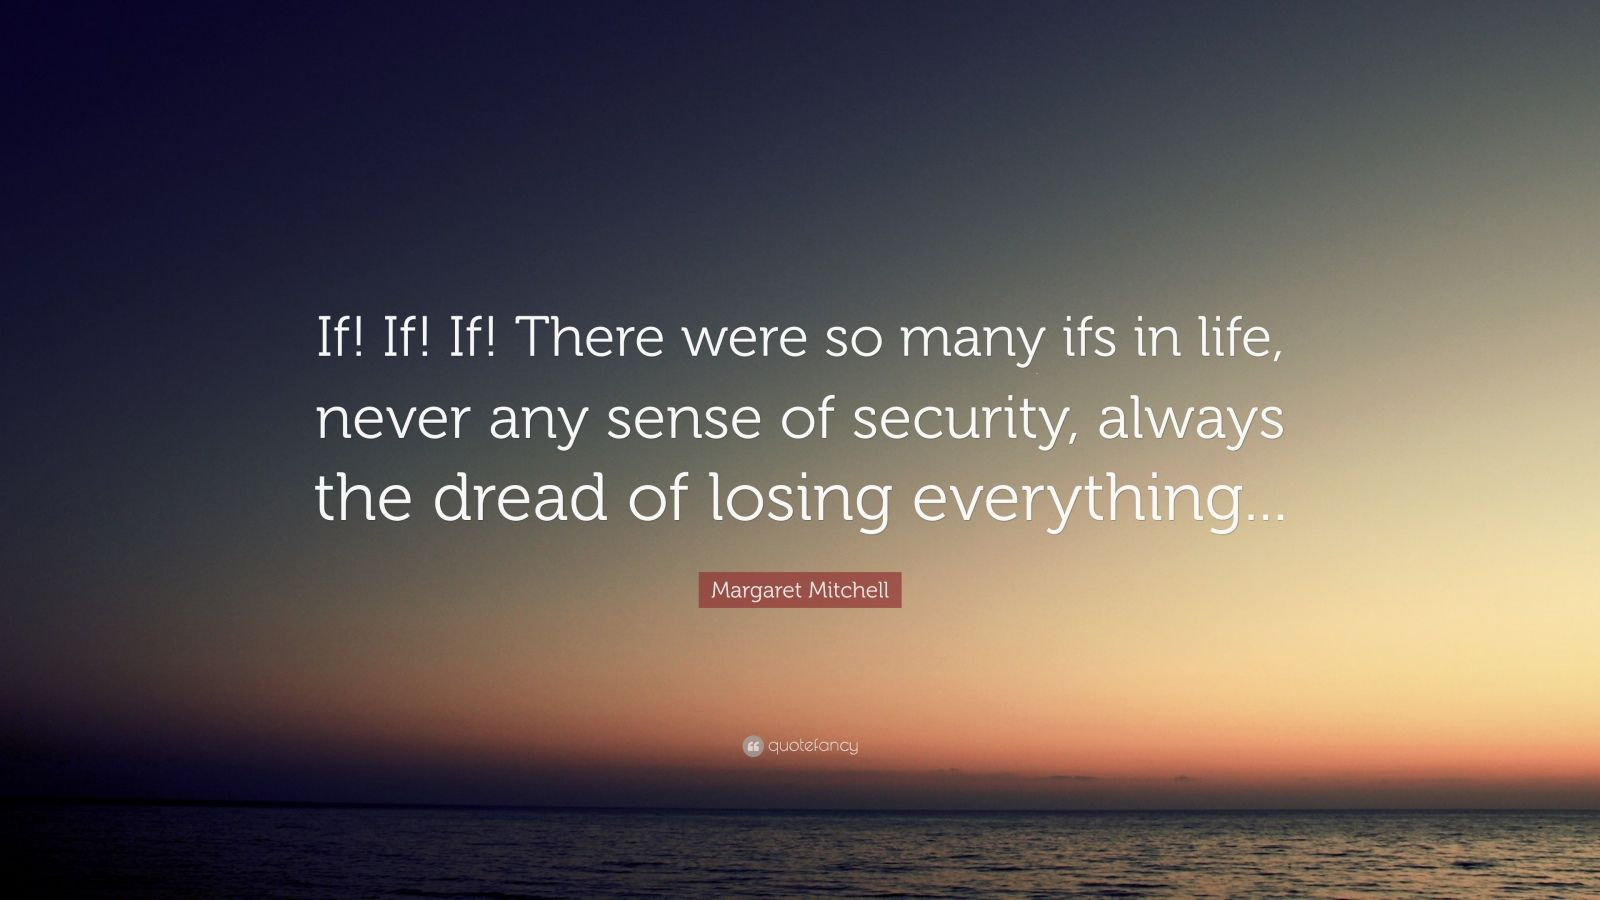 """Margaret Mitchell Quote: """"If! If! If! There were so many ifs in life, never any sense of security, always the dread of losing everything..."""""""